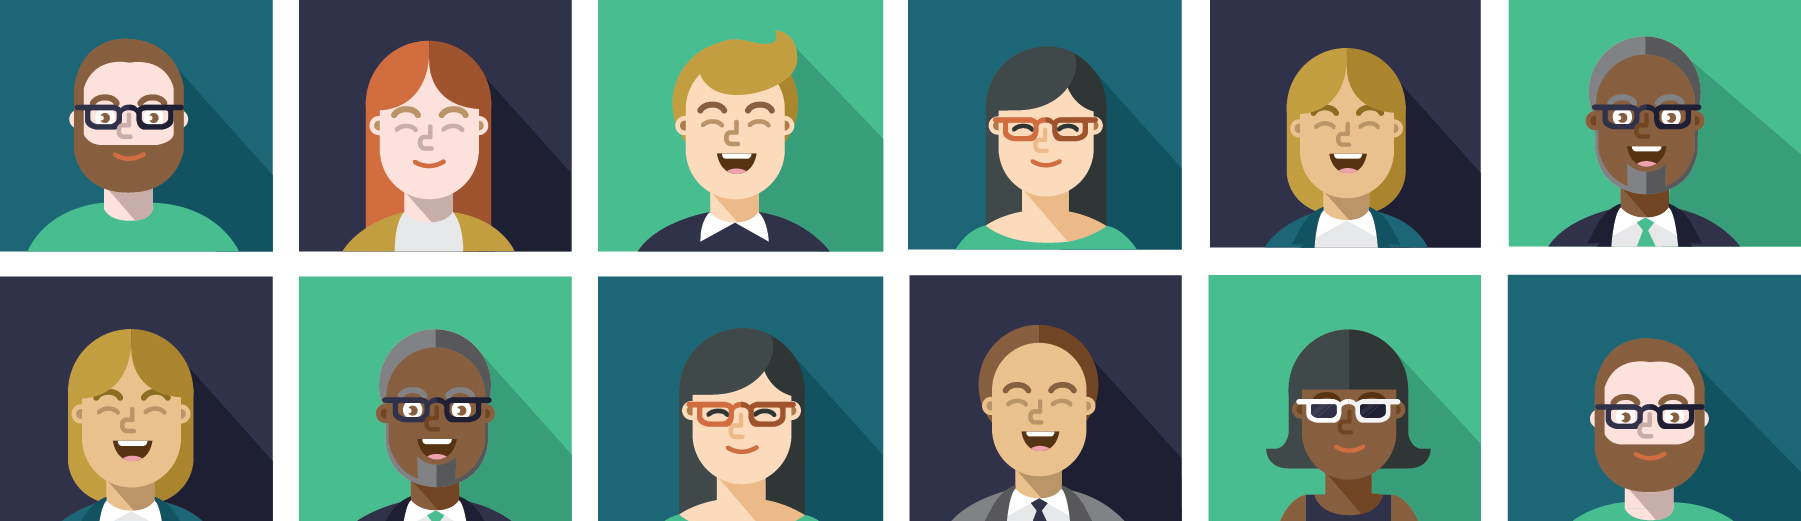 A content marketer's guide to creating personas